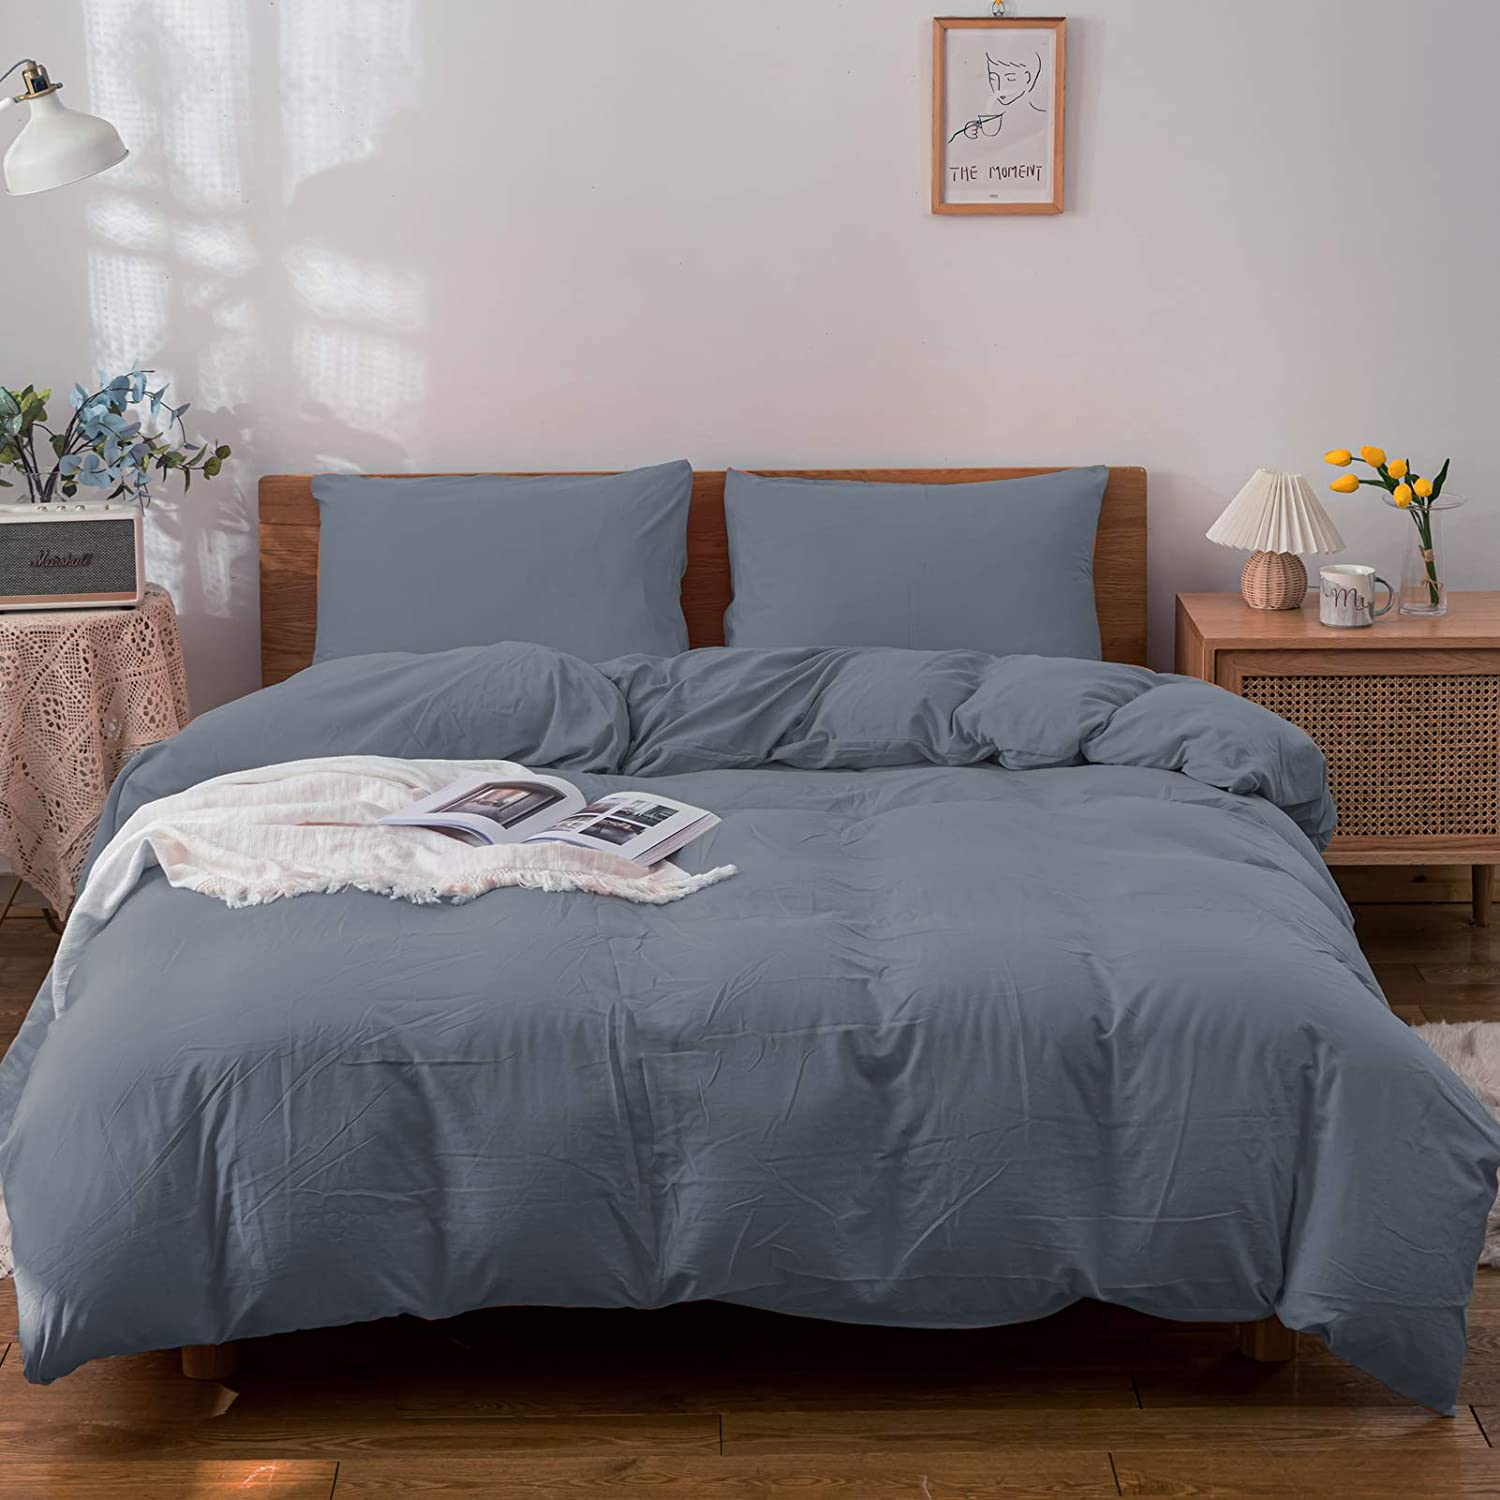 BEIBECOOL Washed Microfiber Duvet Cover Set 3 Pieces with Zipper Closure Corner Ties - Fade Stain Resistant Quilt Case Comforter Cover - Slight Wrinkled Bedding Queen Gray